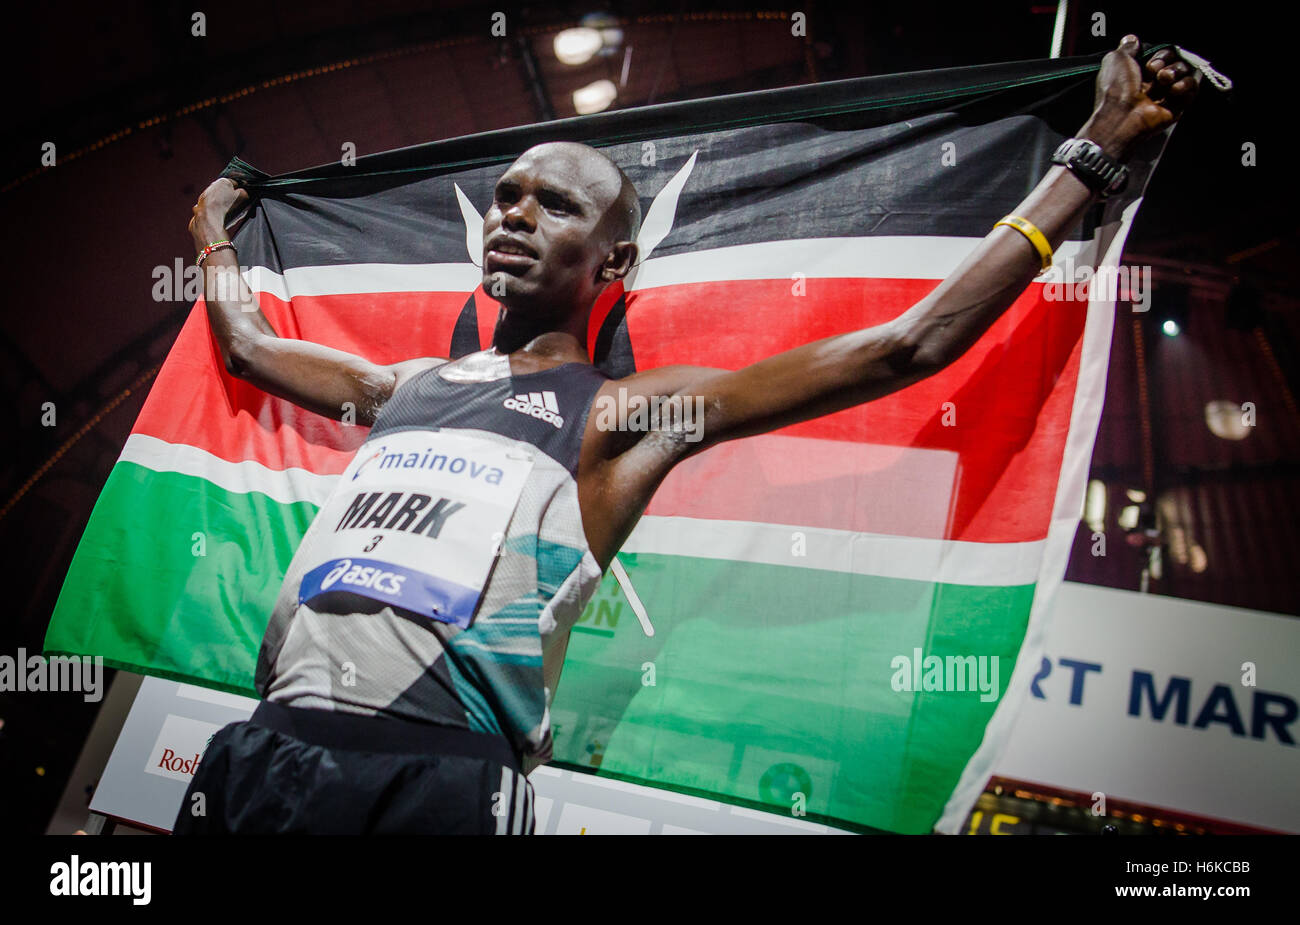 Mark Korir from Kenia wining the Frankfurt Marathon 2016 at the Festhalle in Frankfurt/Main, Germany, 30 October - Stock Image